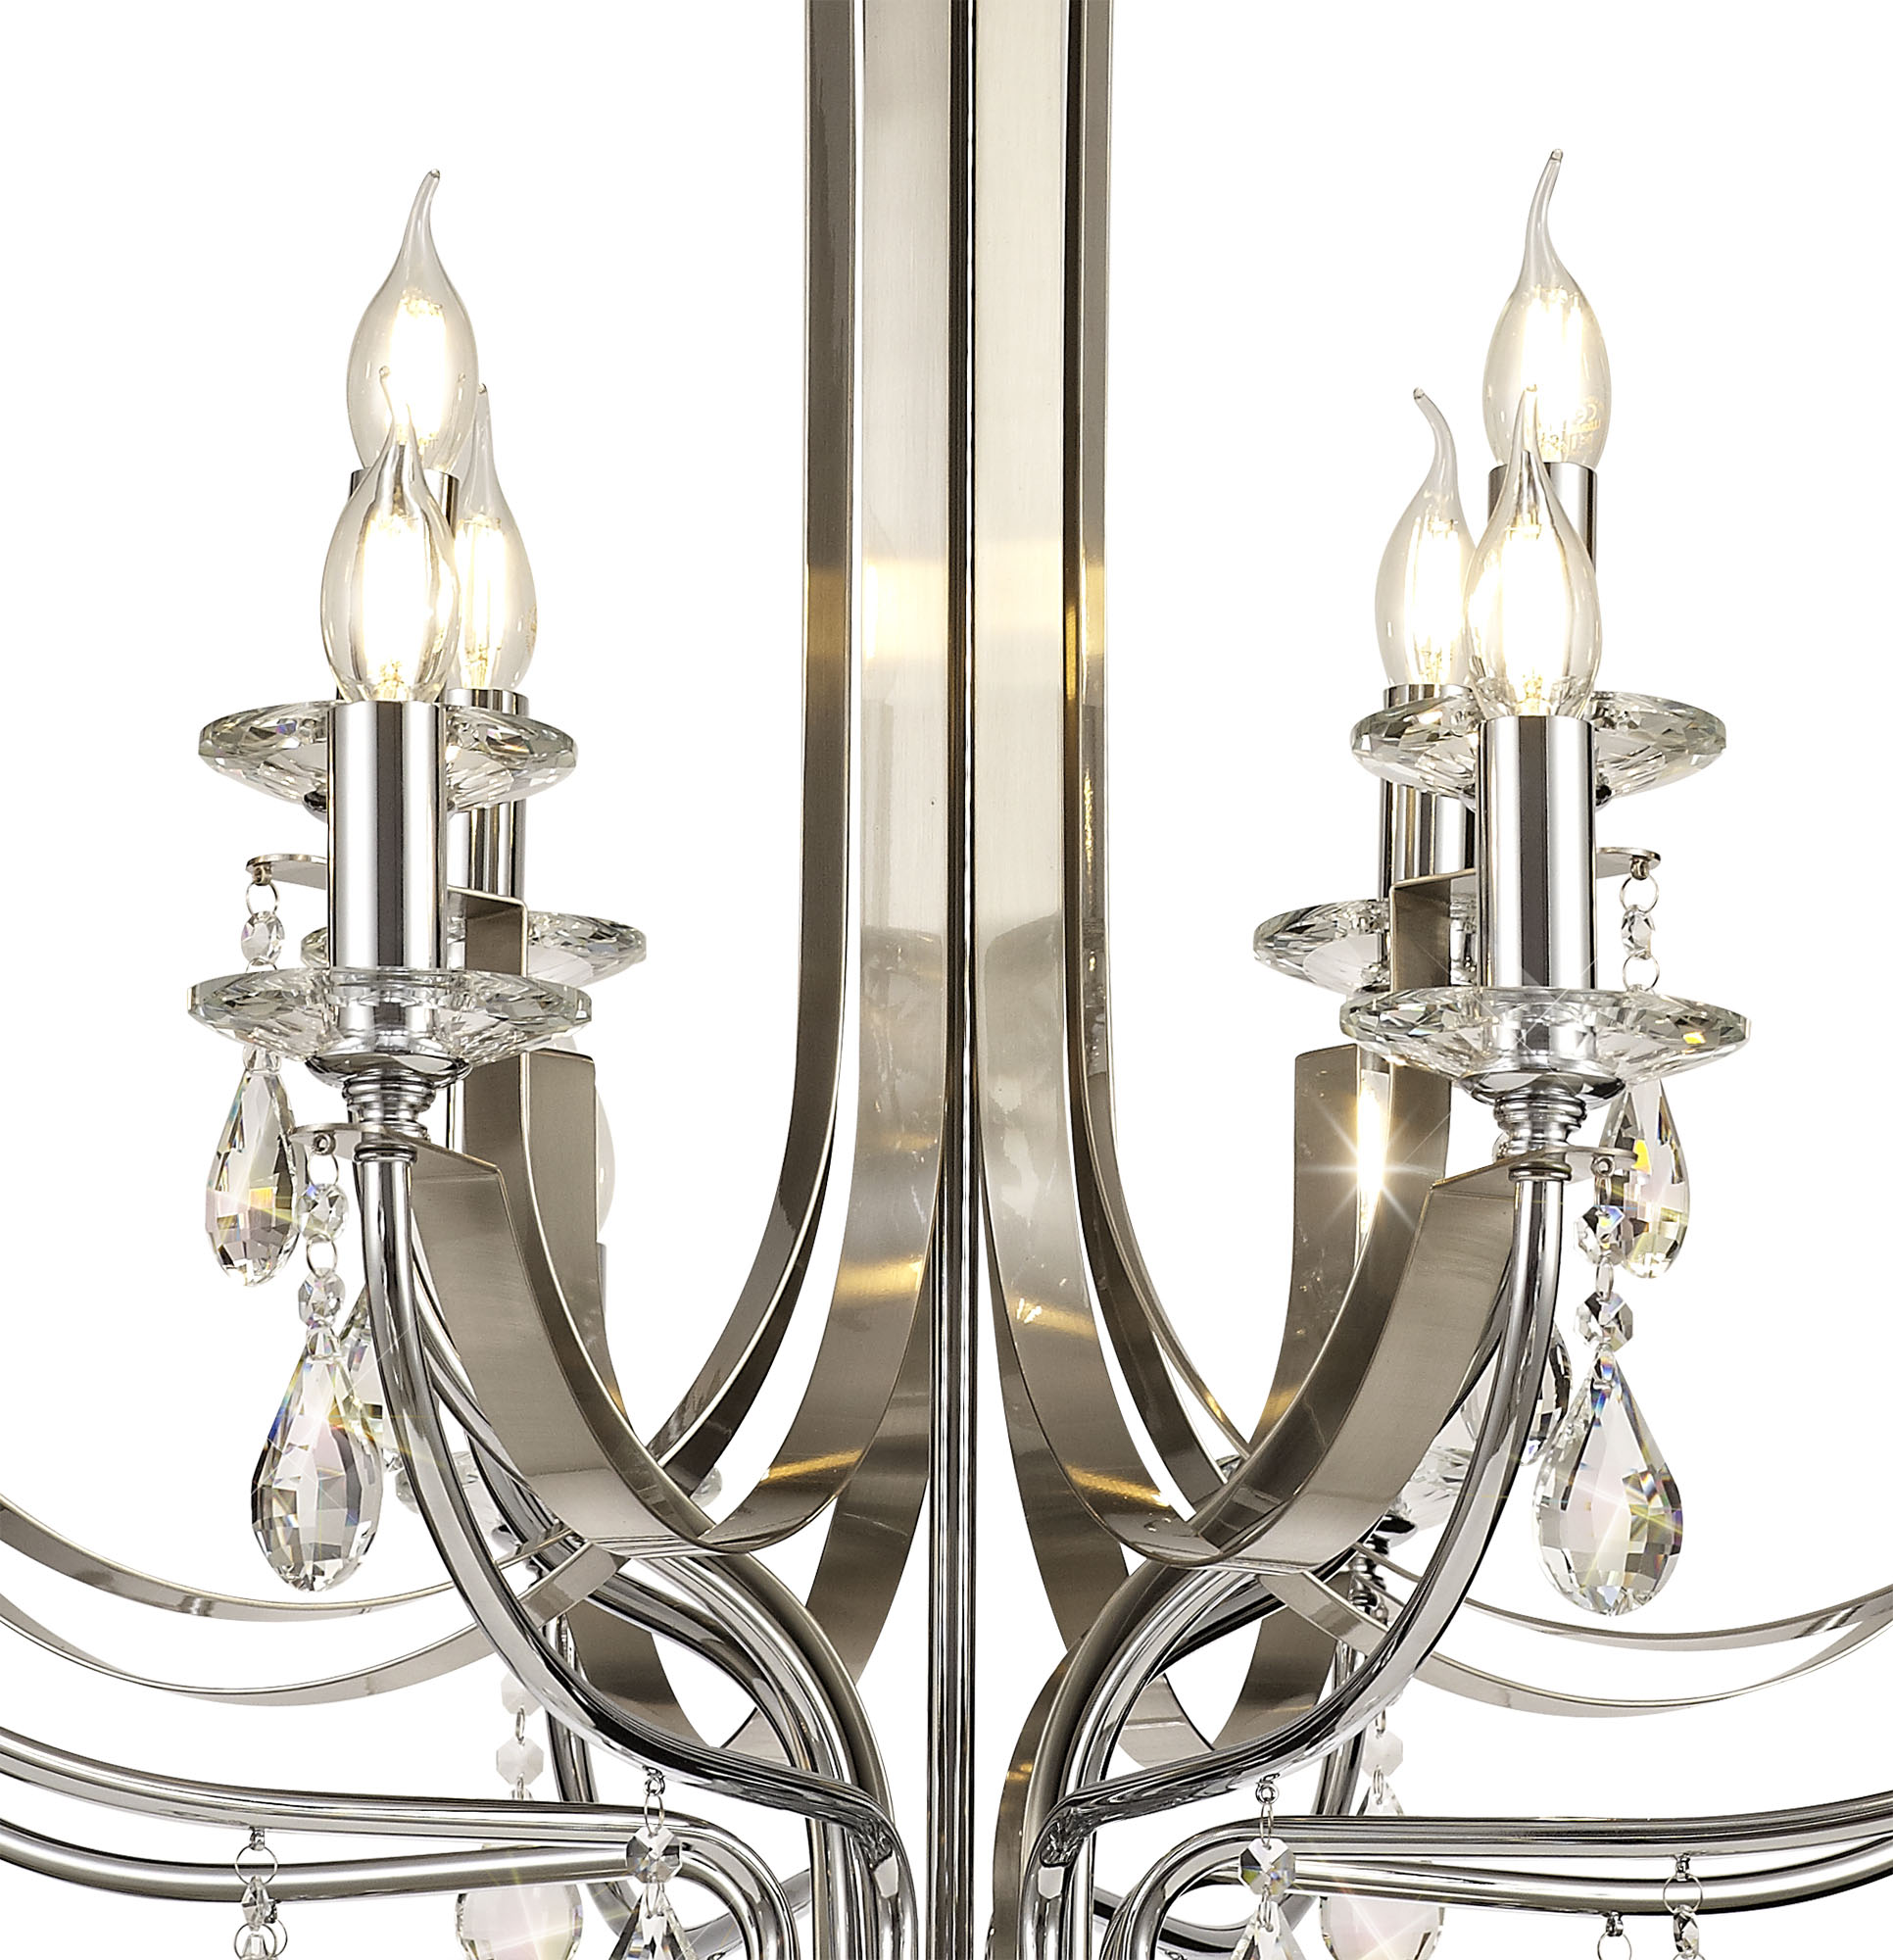 Pendant 12 Light E14 Polished Chrome/Satin Nickel/Clear Crystal